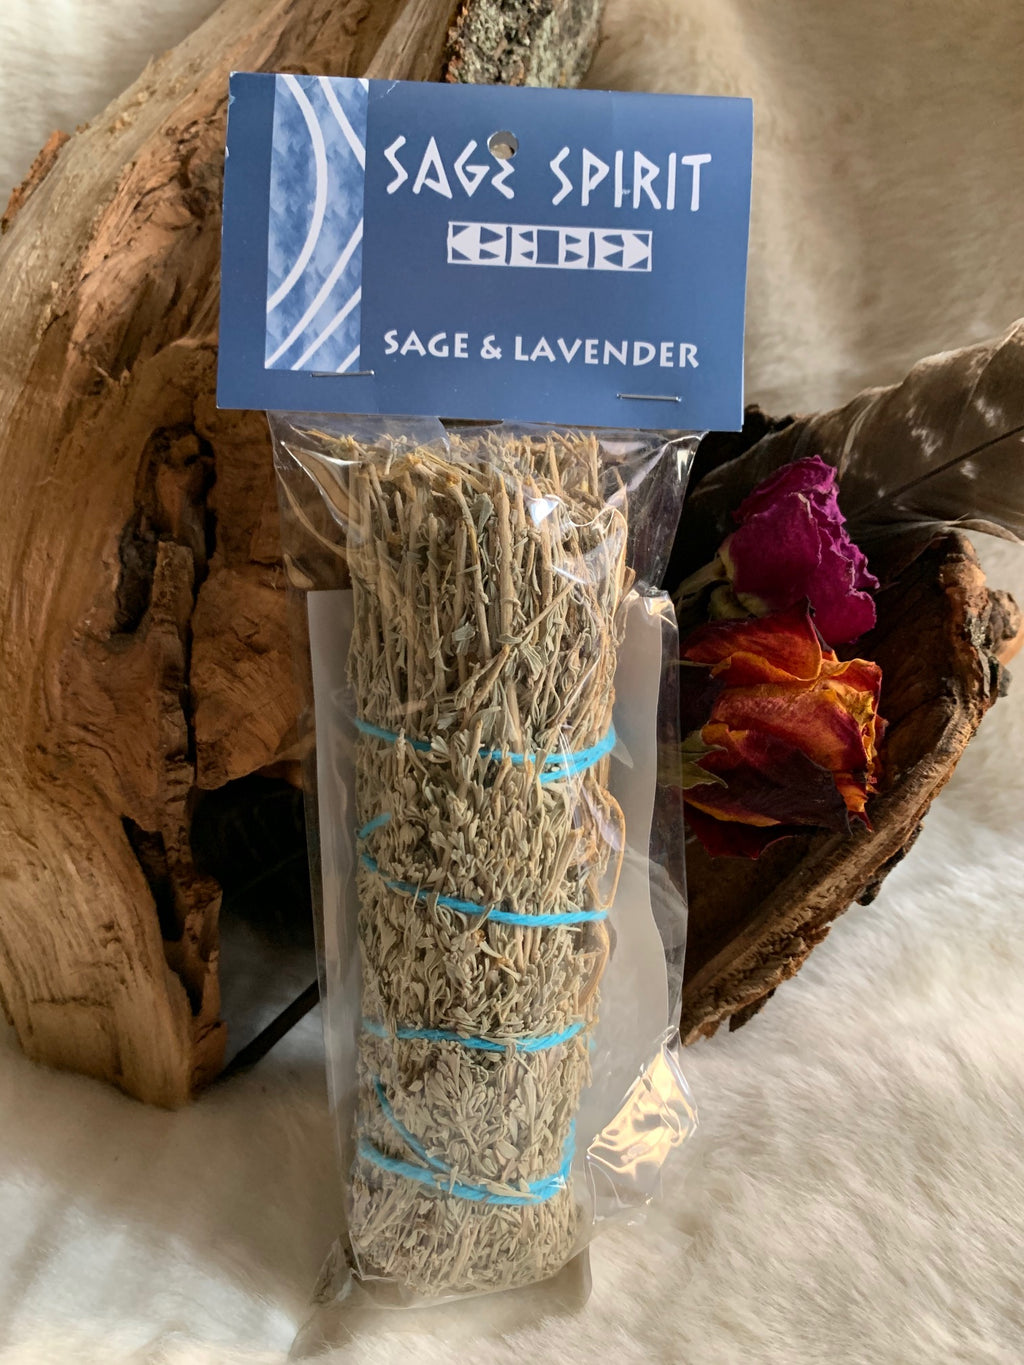 Using sage is a great way to cleanse and rid yourself of negative energies. This bundle is coupled with Lavender which is a great way to bring in the soft but protective energies of the feminine divine.